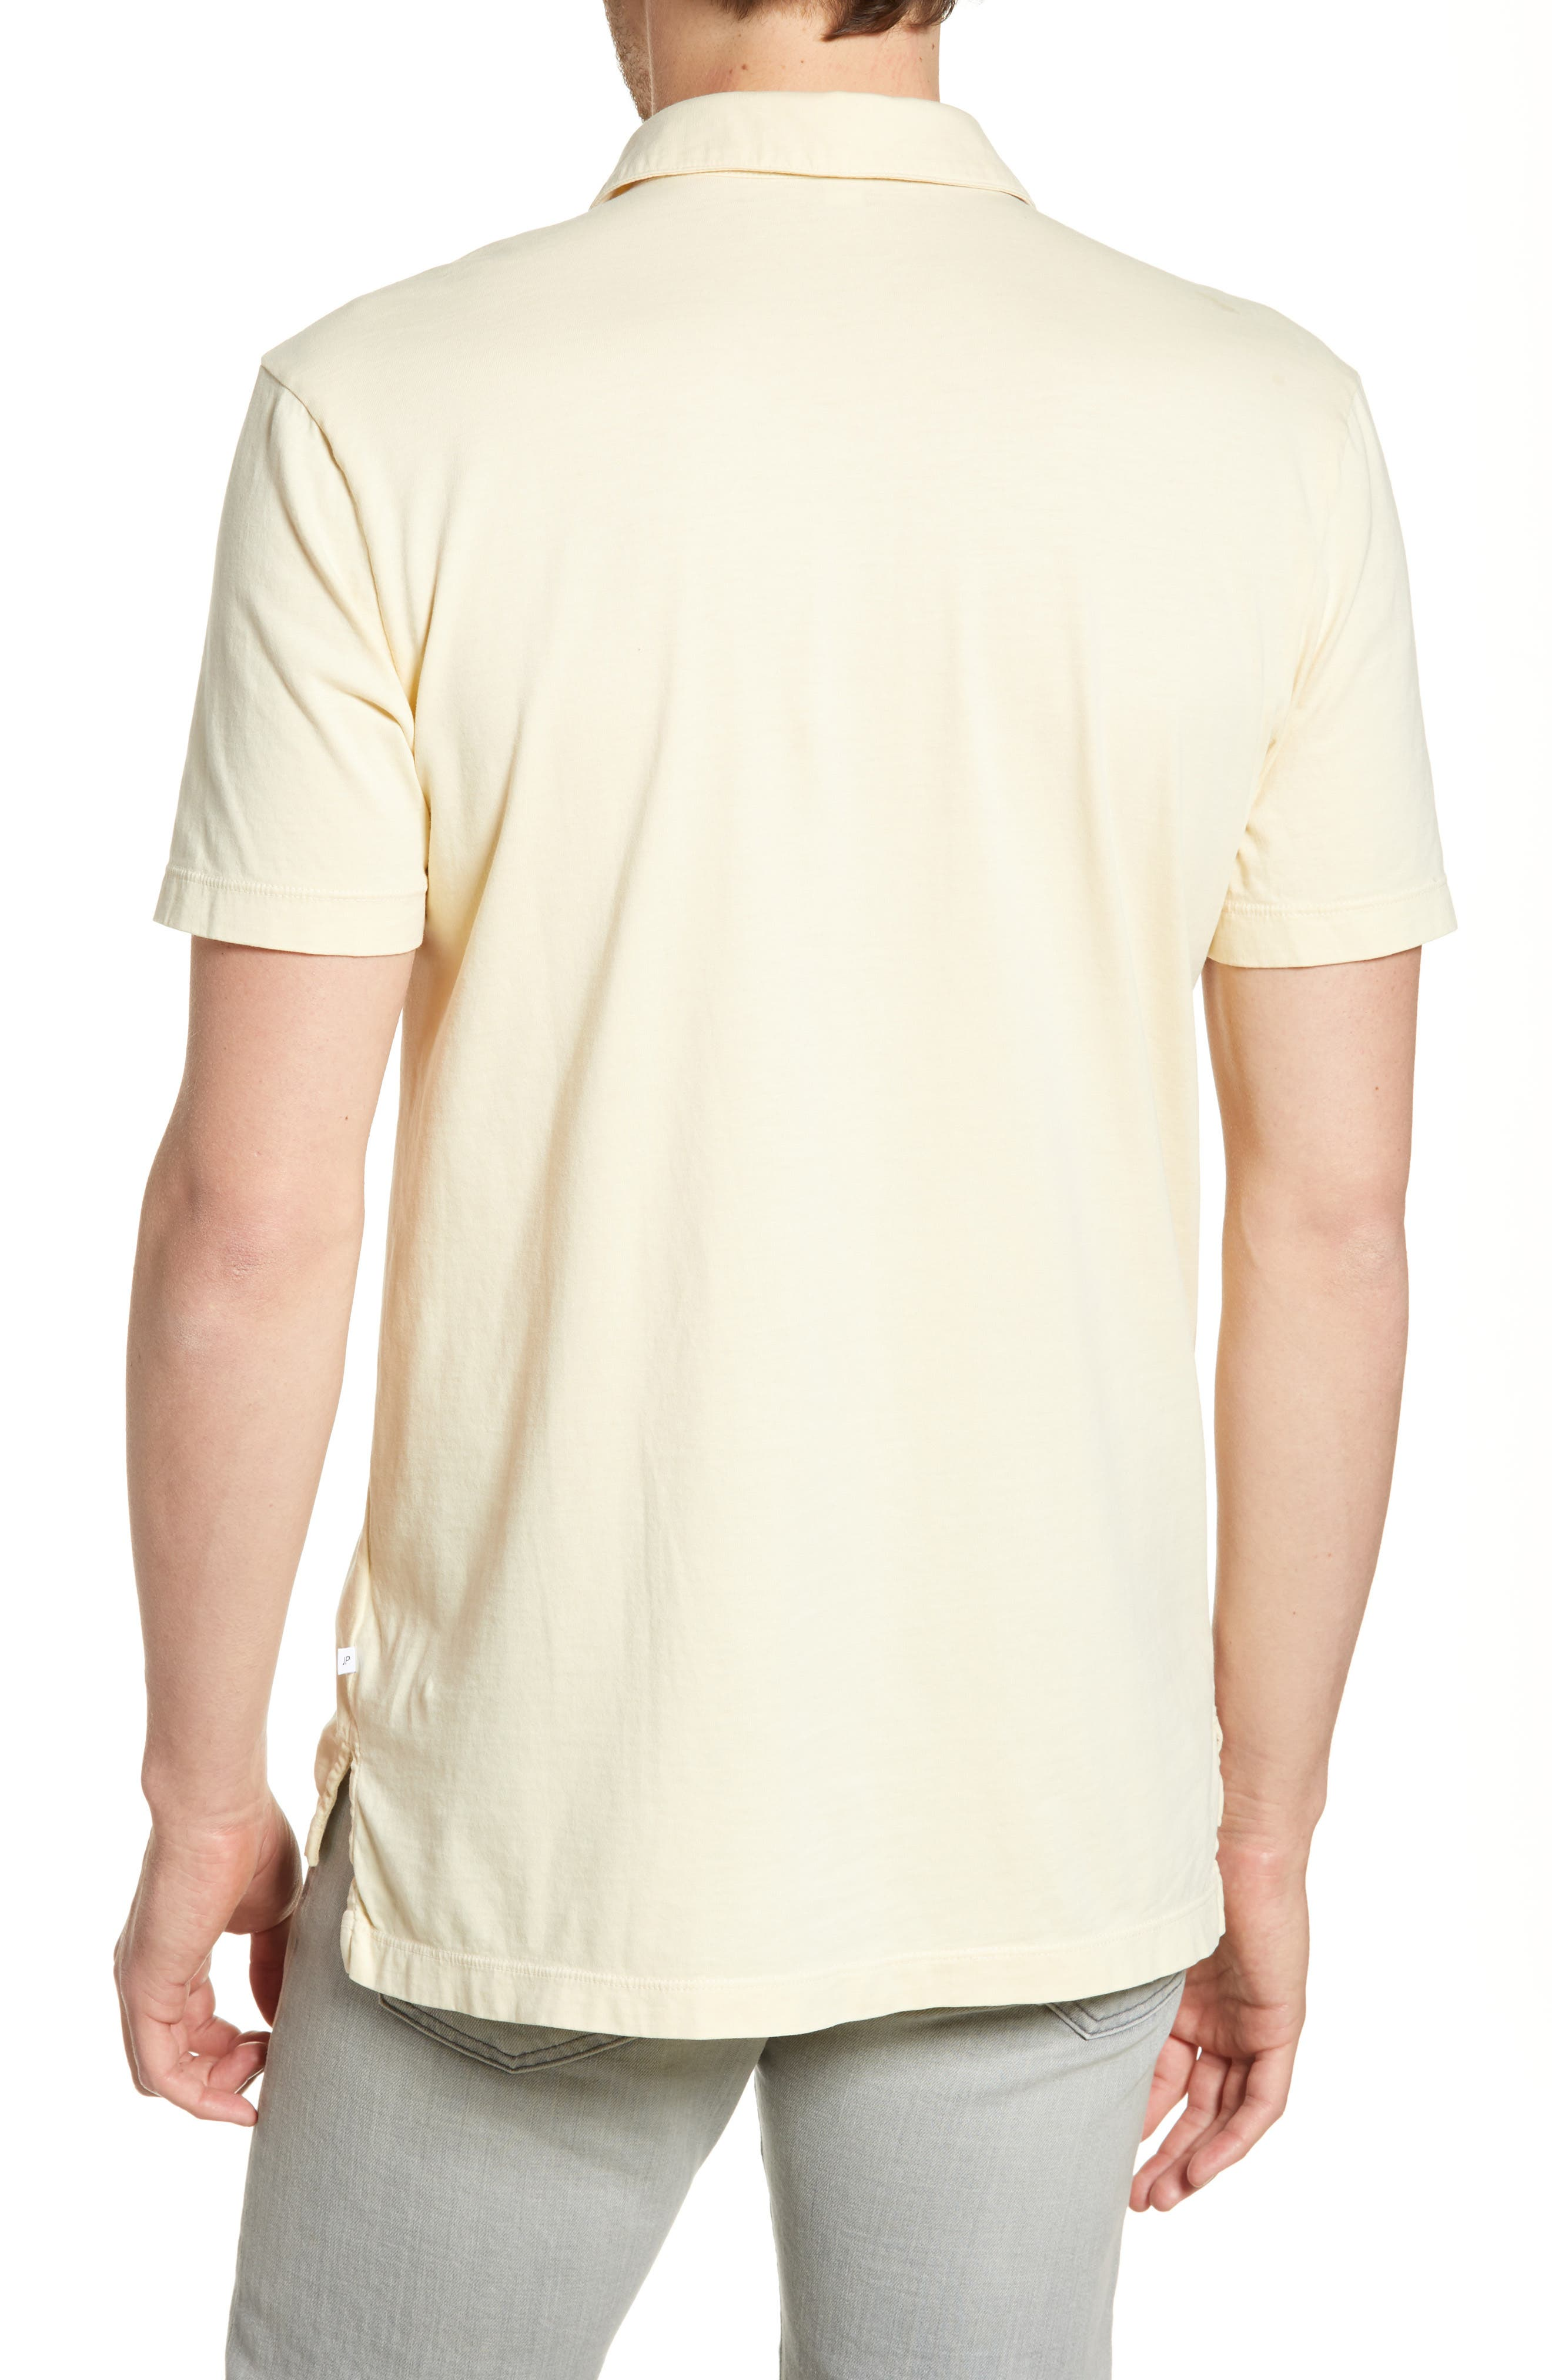 JAMES PERSE, Slim Fit Sueded Jersey Polo, Alternate thumbnail 2, color, GESSO